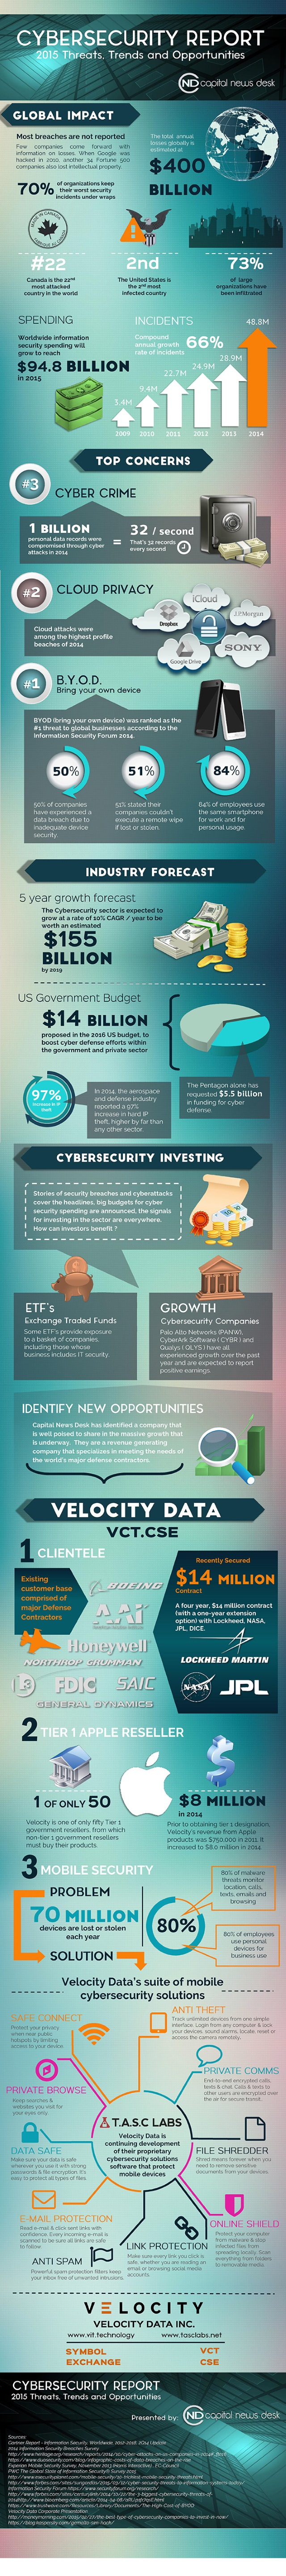 Velocity cybersecurity infographic